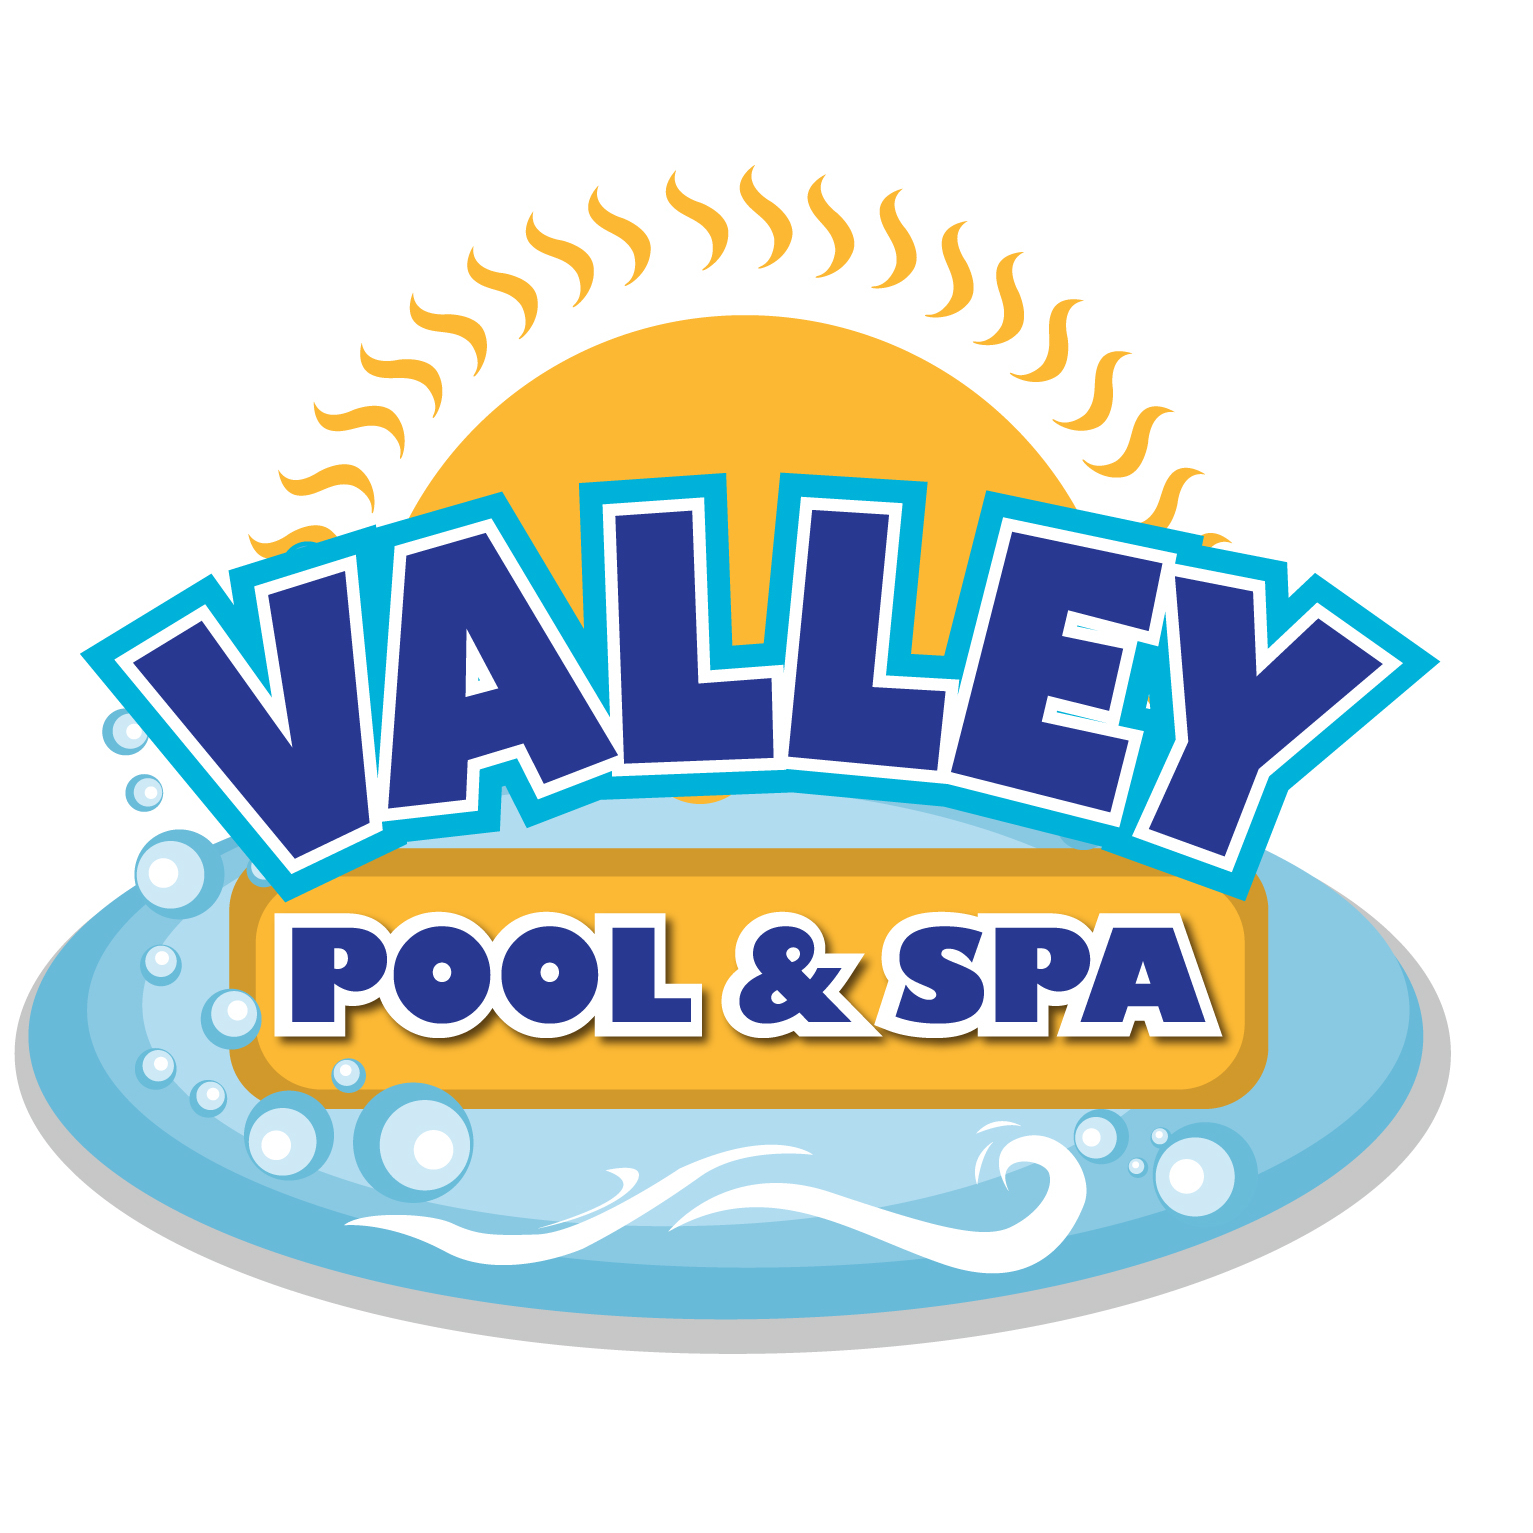 Valley Pool & Spa - Greensburg - Greensburg, PA - Swimming Pools & Spas